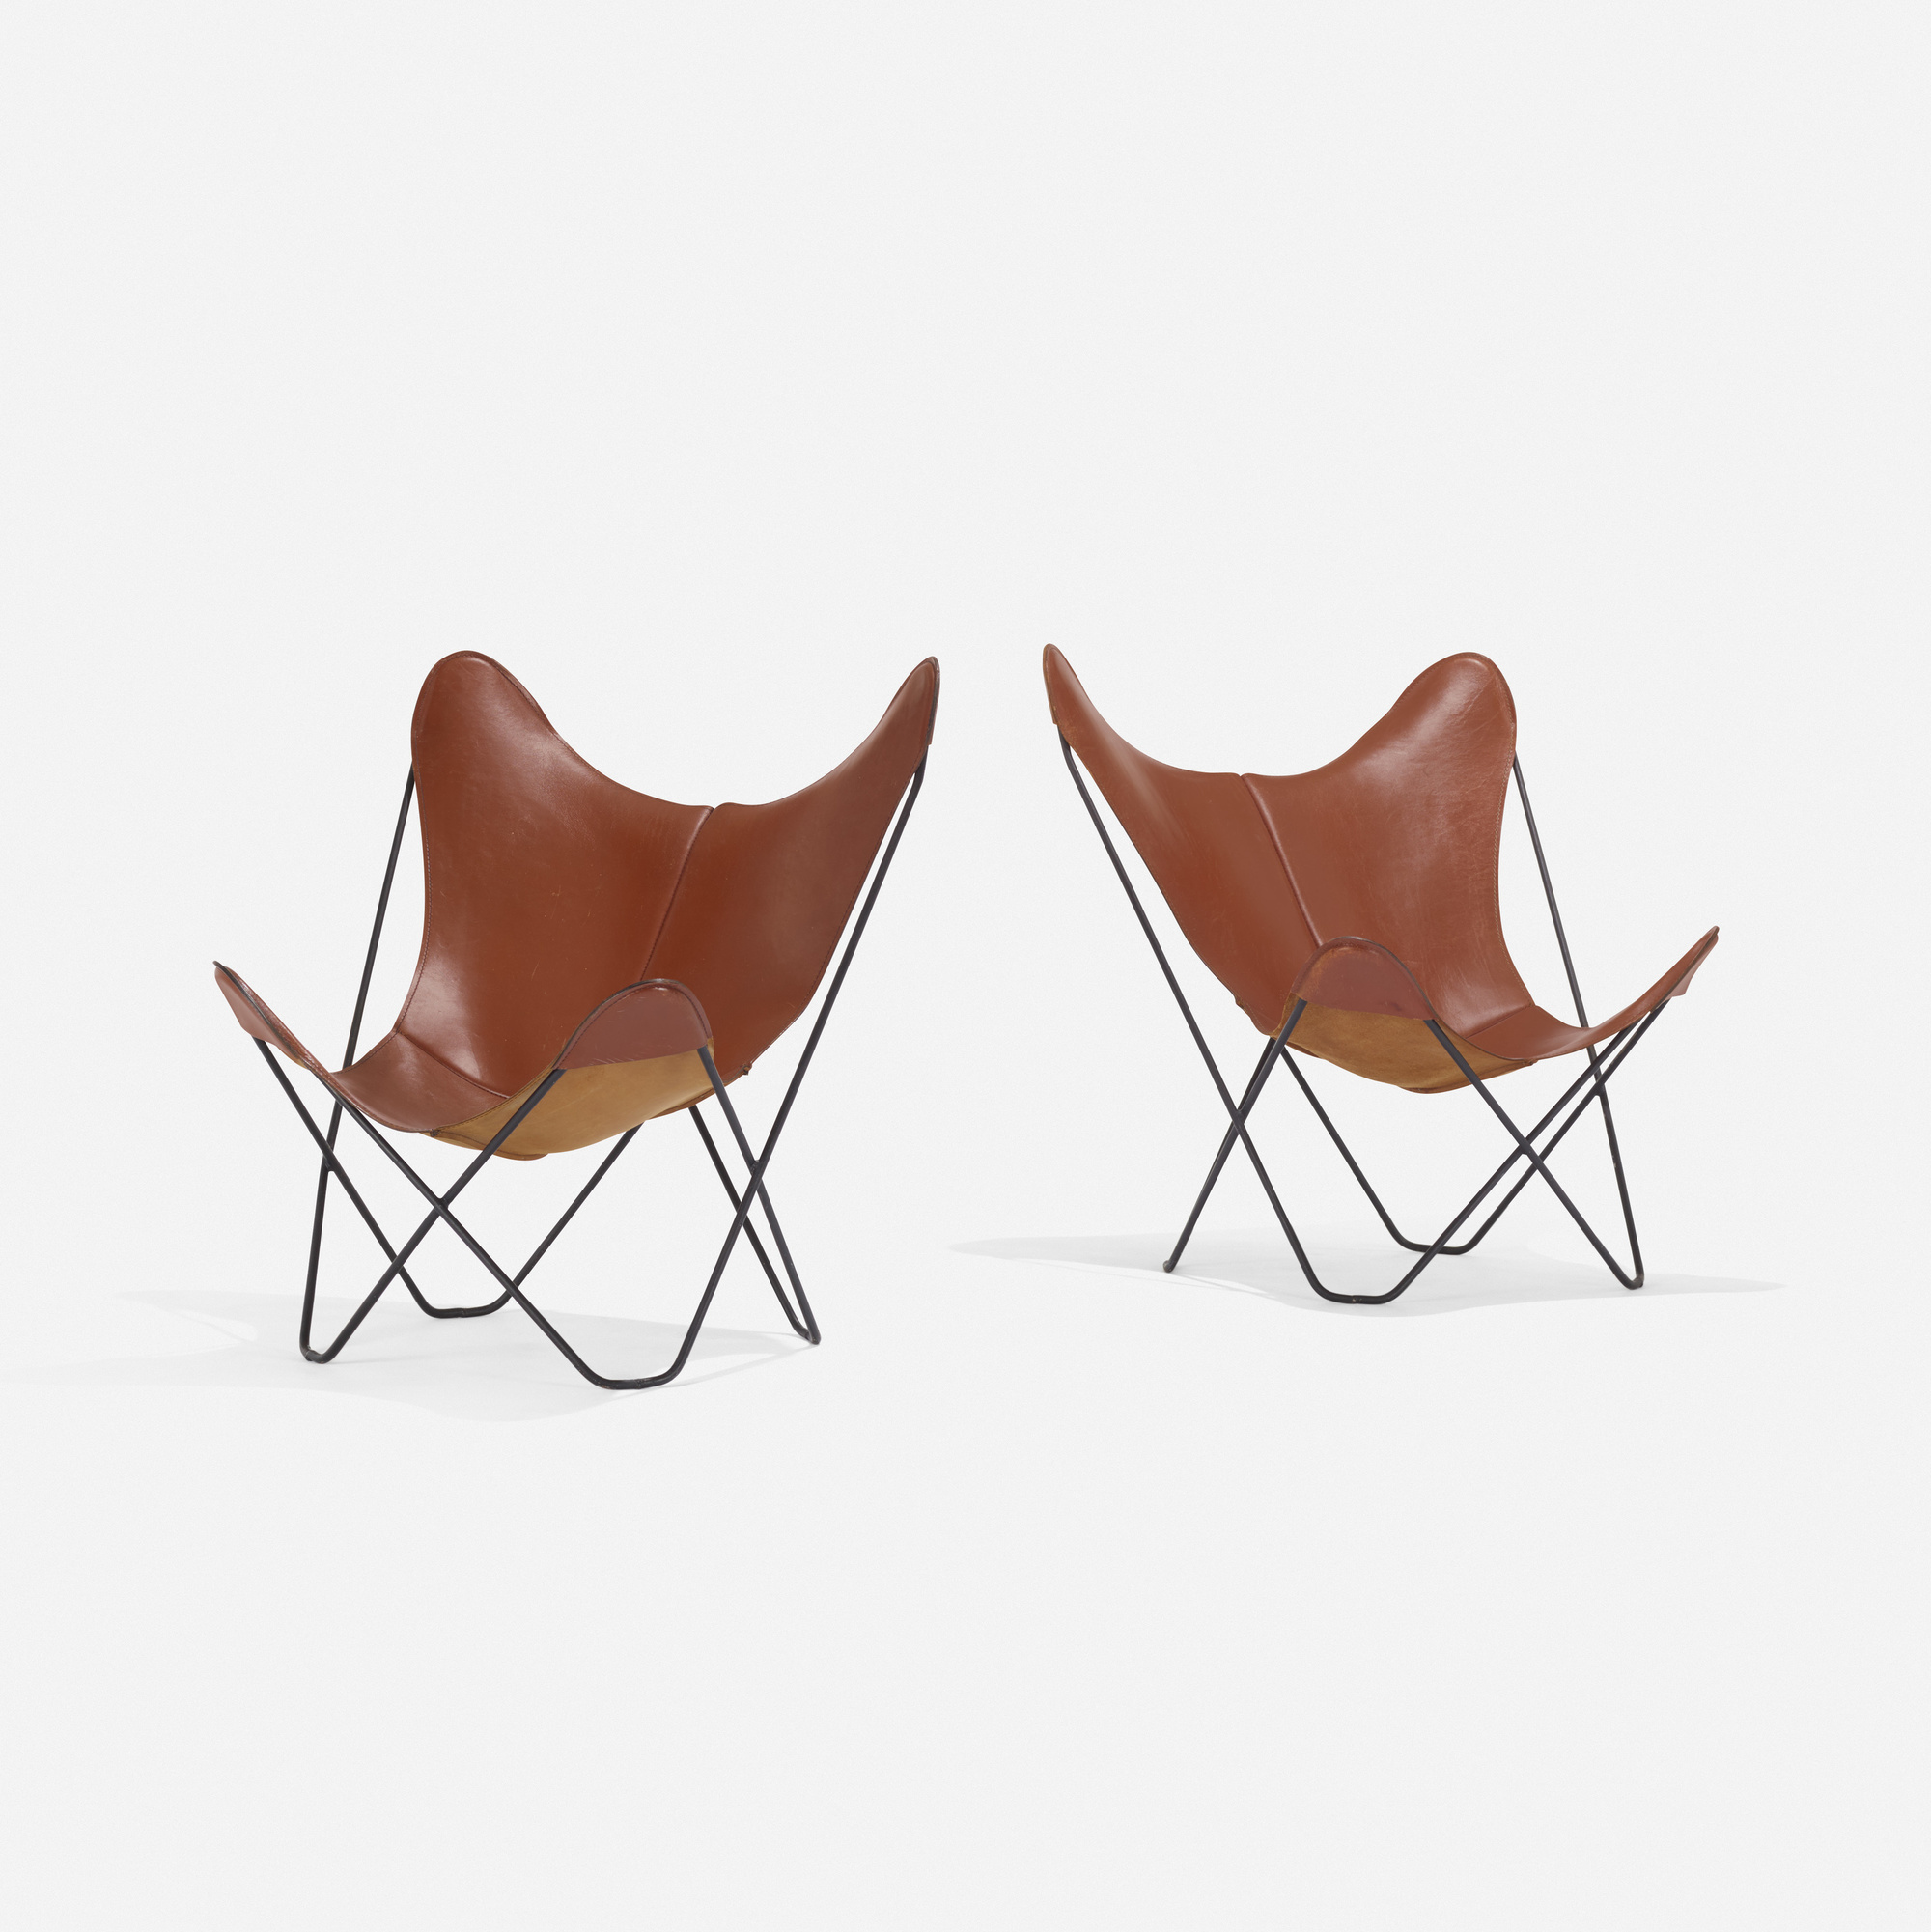 168: Antonio Bonet, Juan Kurchan And Jorge Ferrari Hardoy / Butterfly Chairs,  Pair